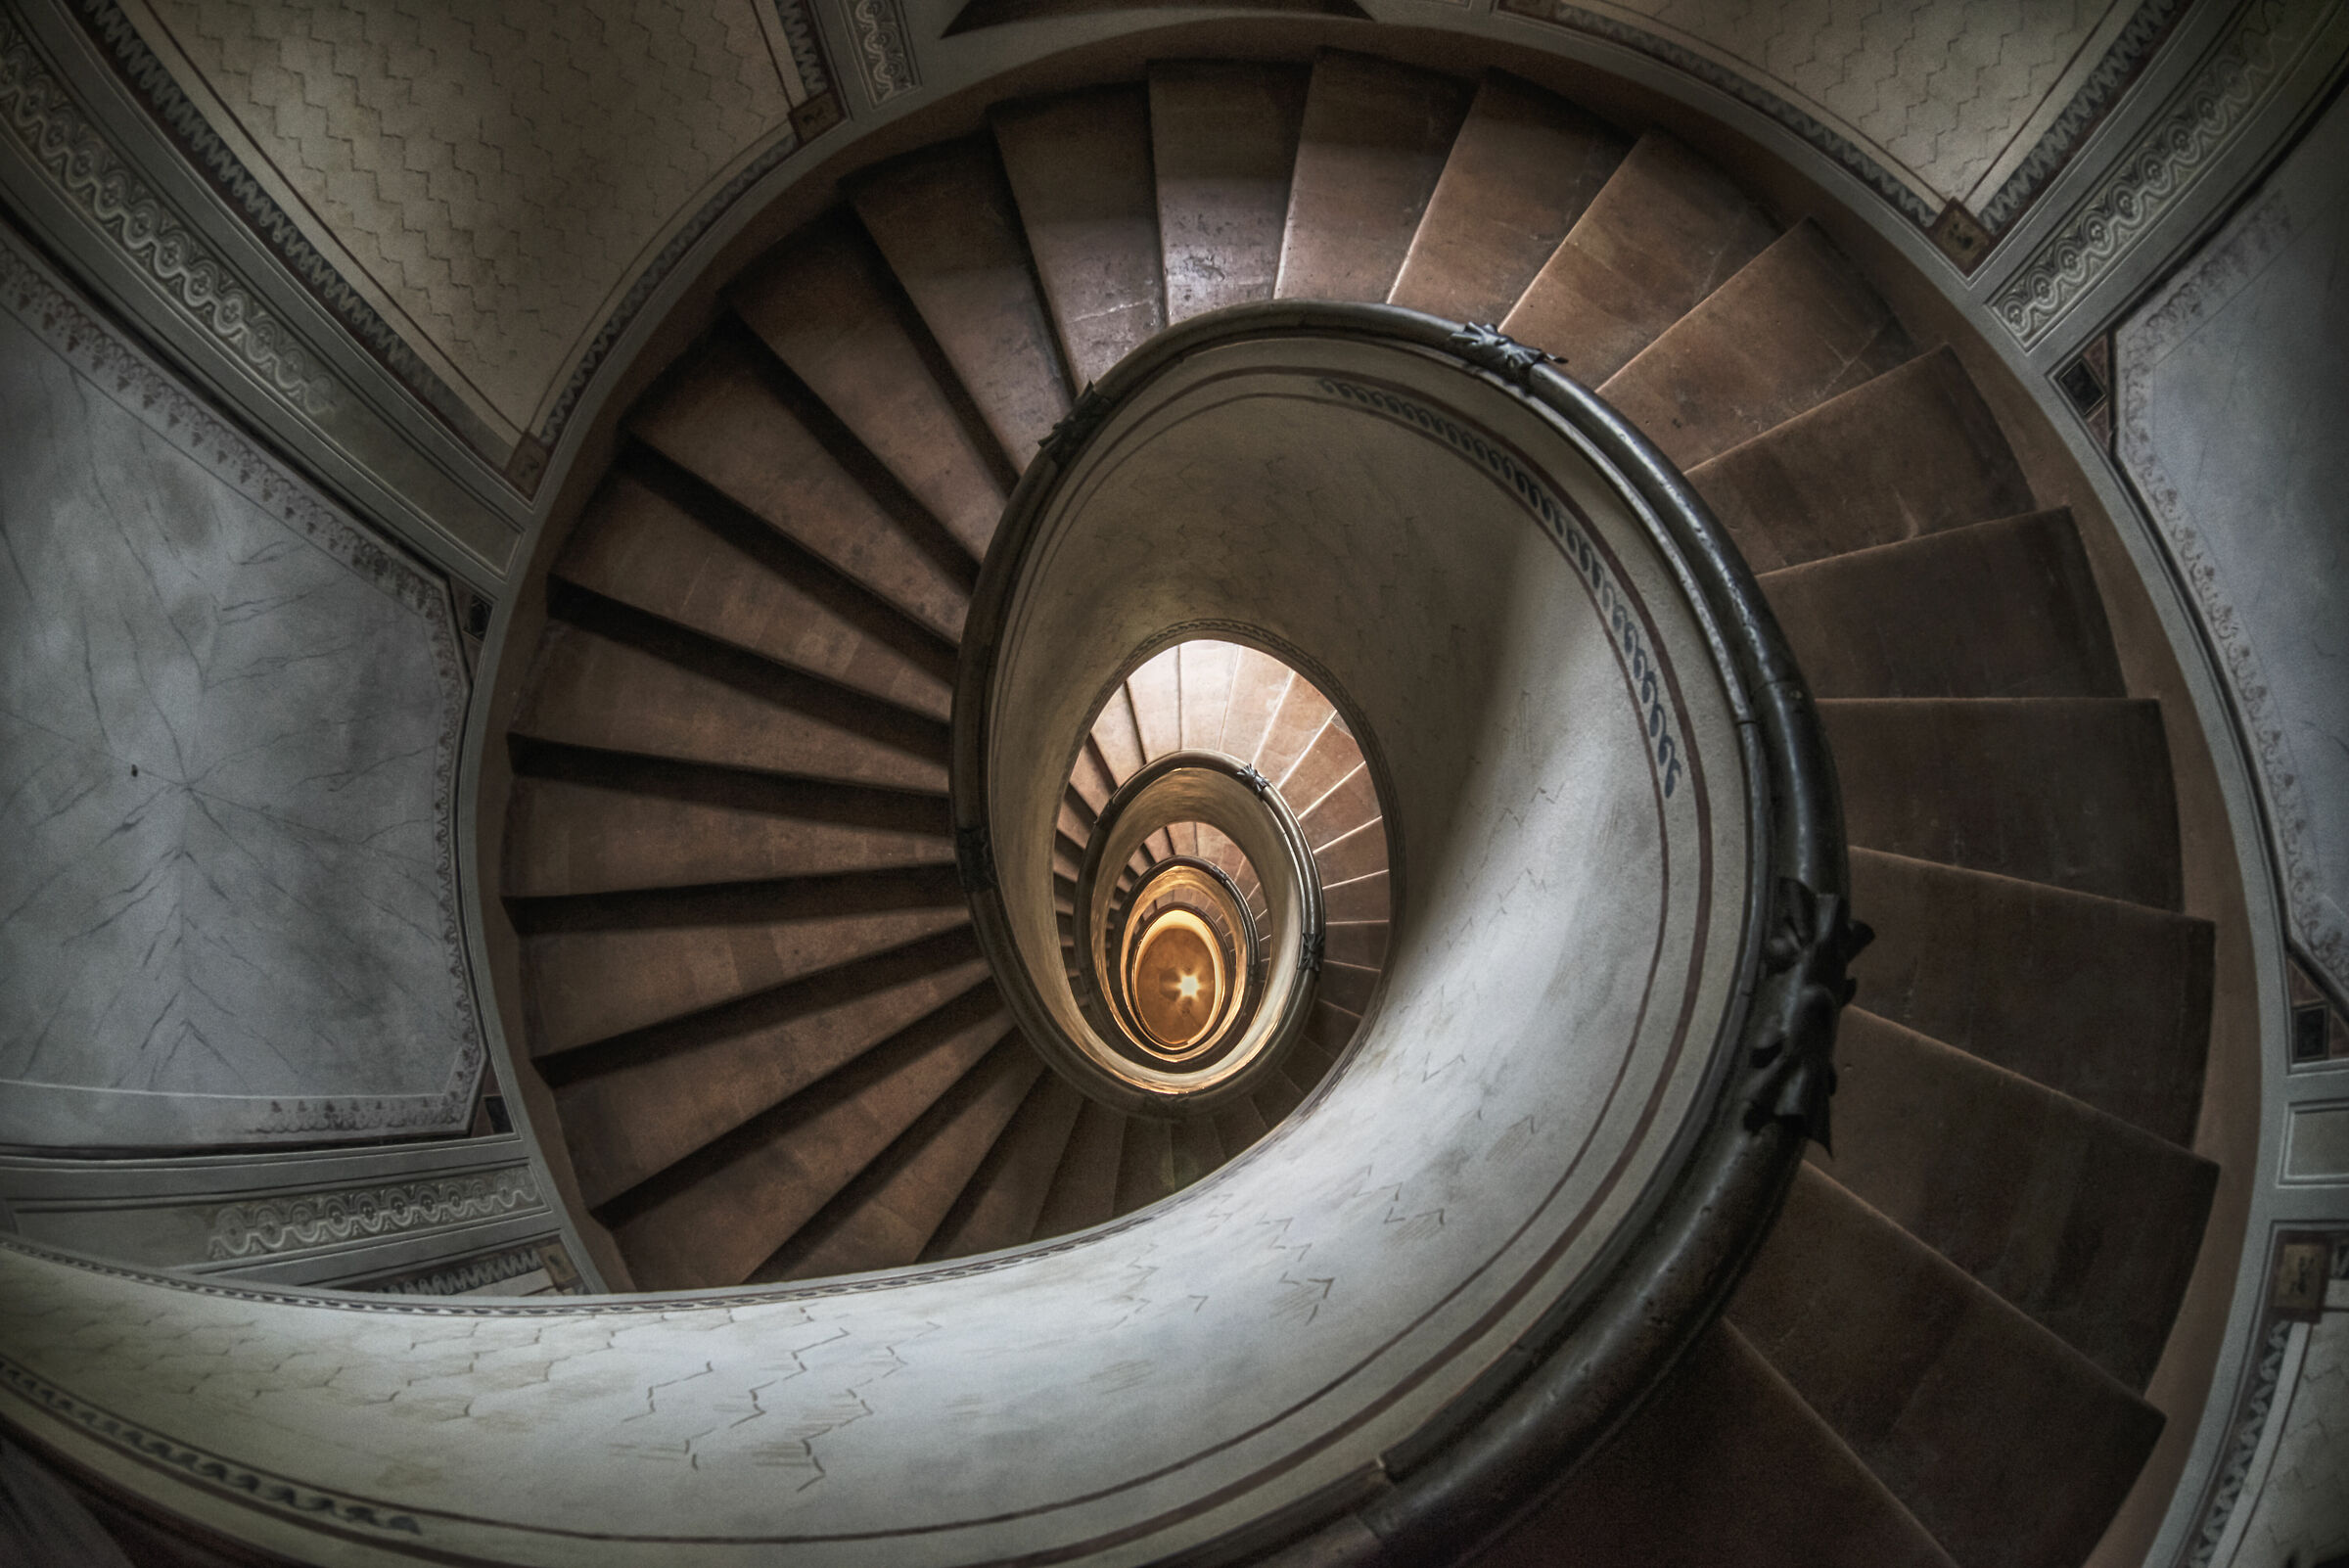 The spiral staircase of the Barozzi...